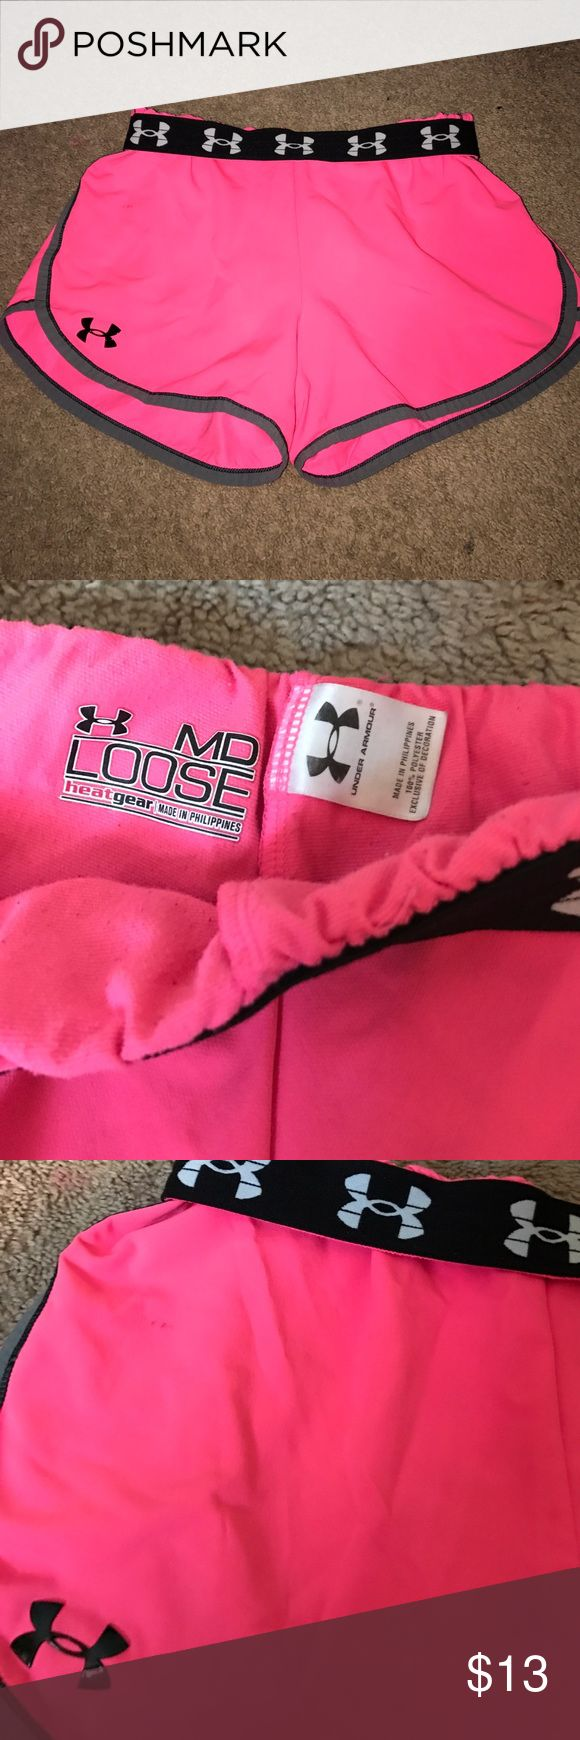 Under Armour hot pink shorts Size medium, great condition. Small spot pictured, bright pink color with grey lining! Plastic under Armour sign so won't have to worry about it peeling off!! Under Armour Shorts